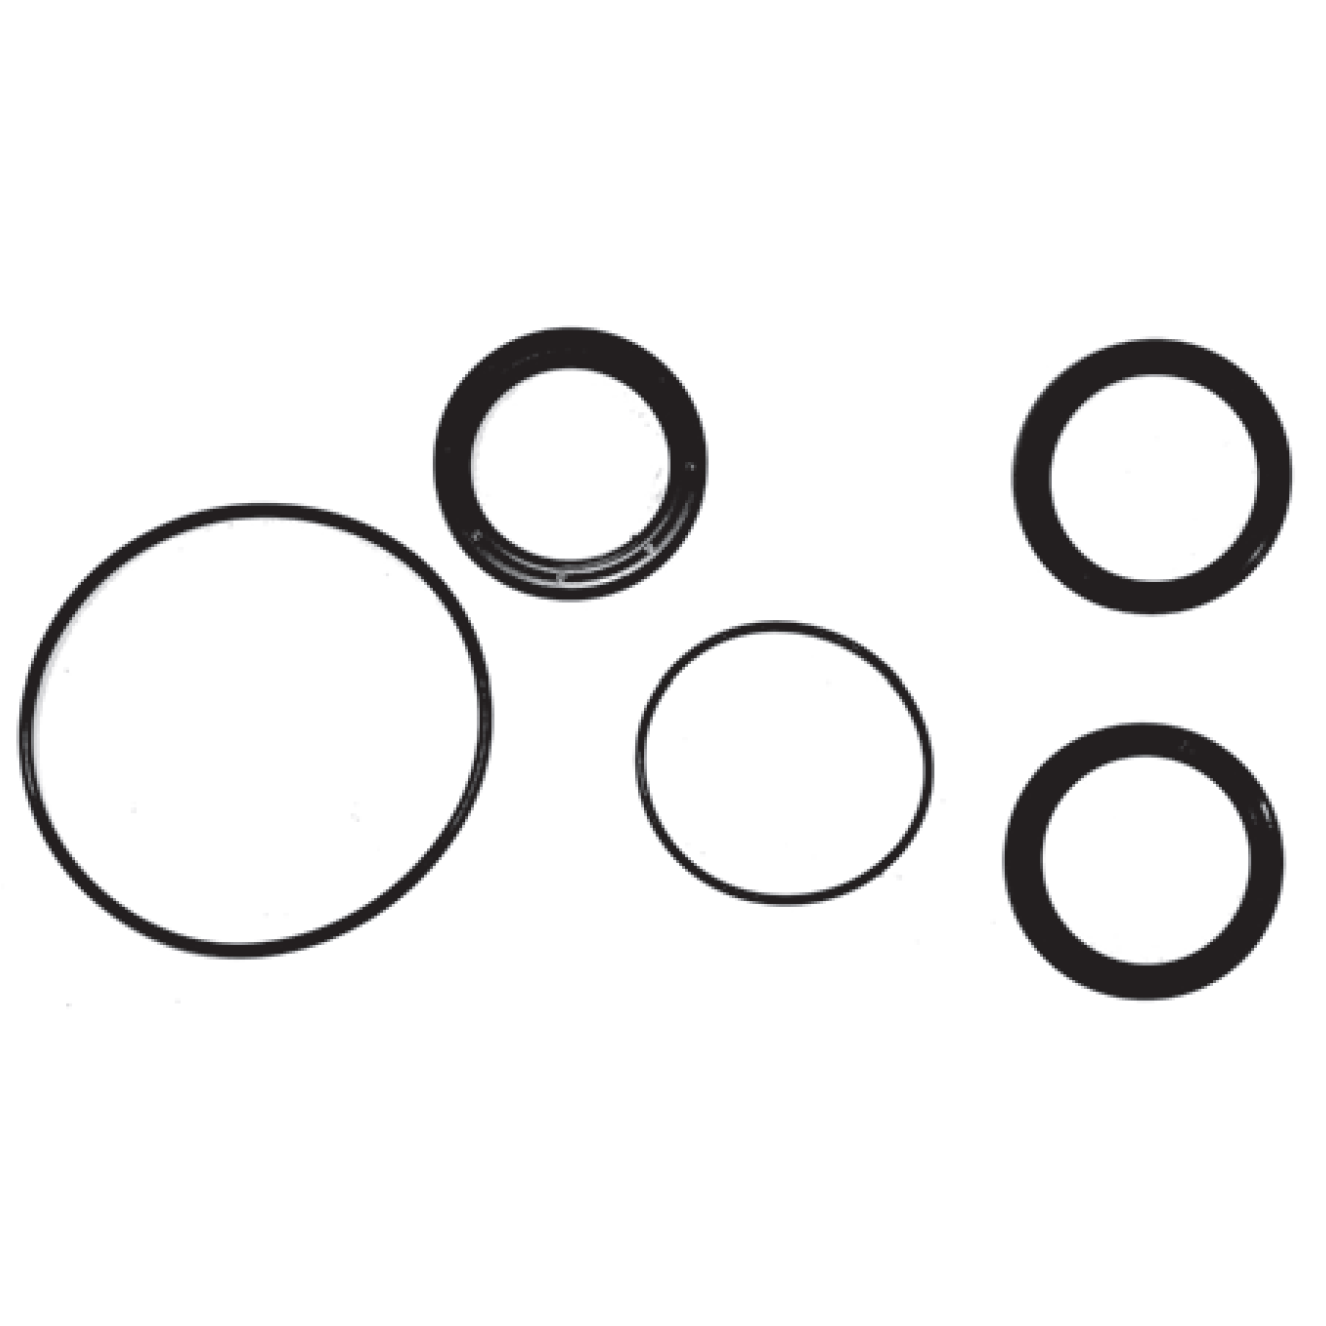 category-merc-crankshaft-seal-kits.png